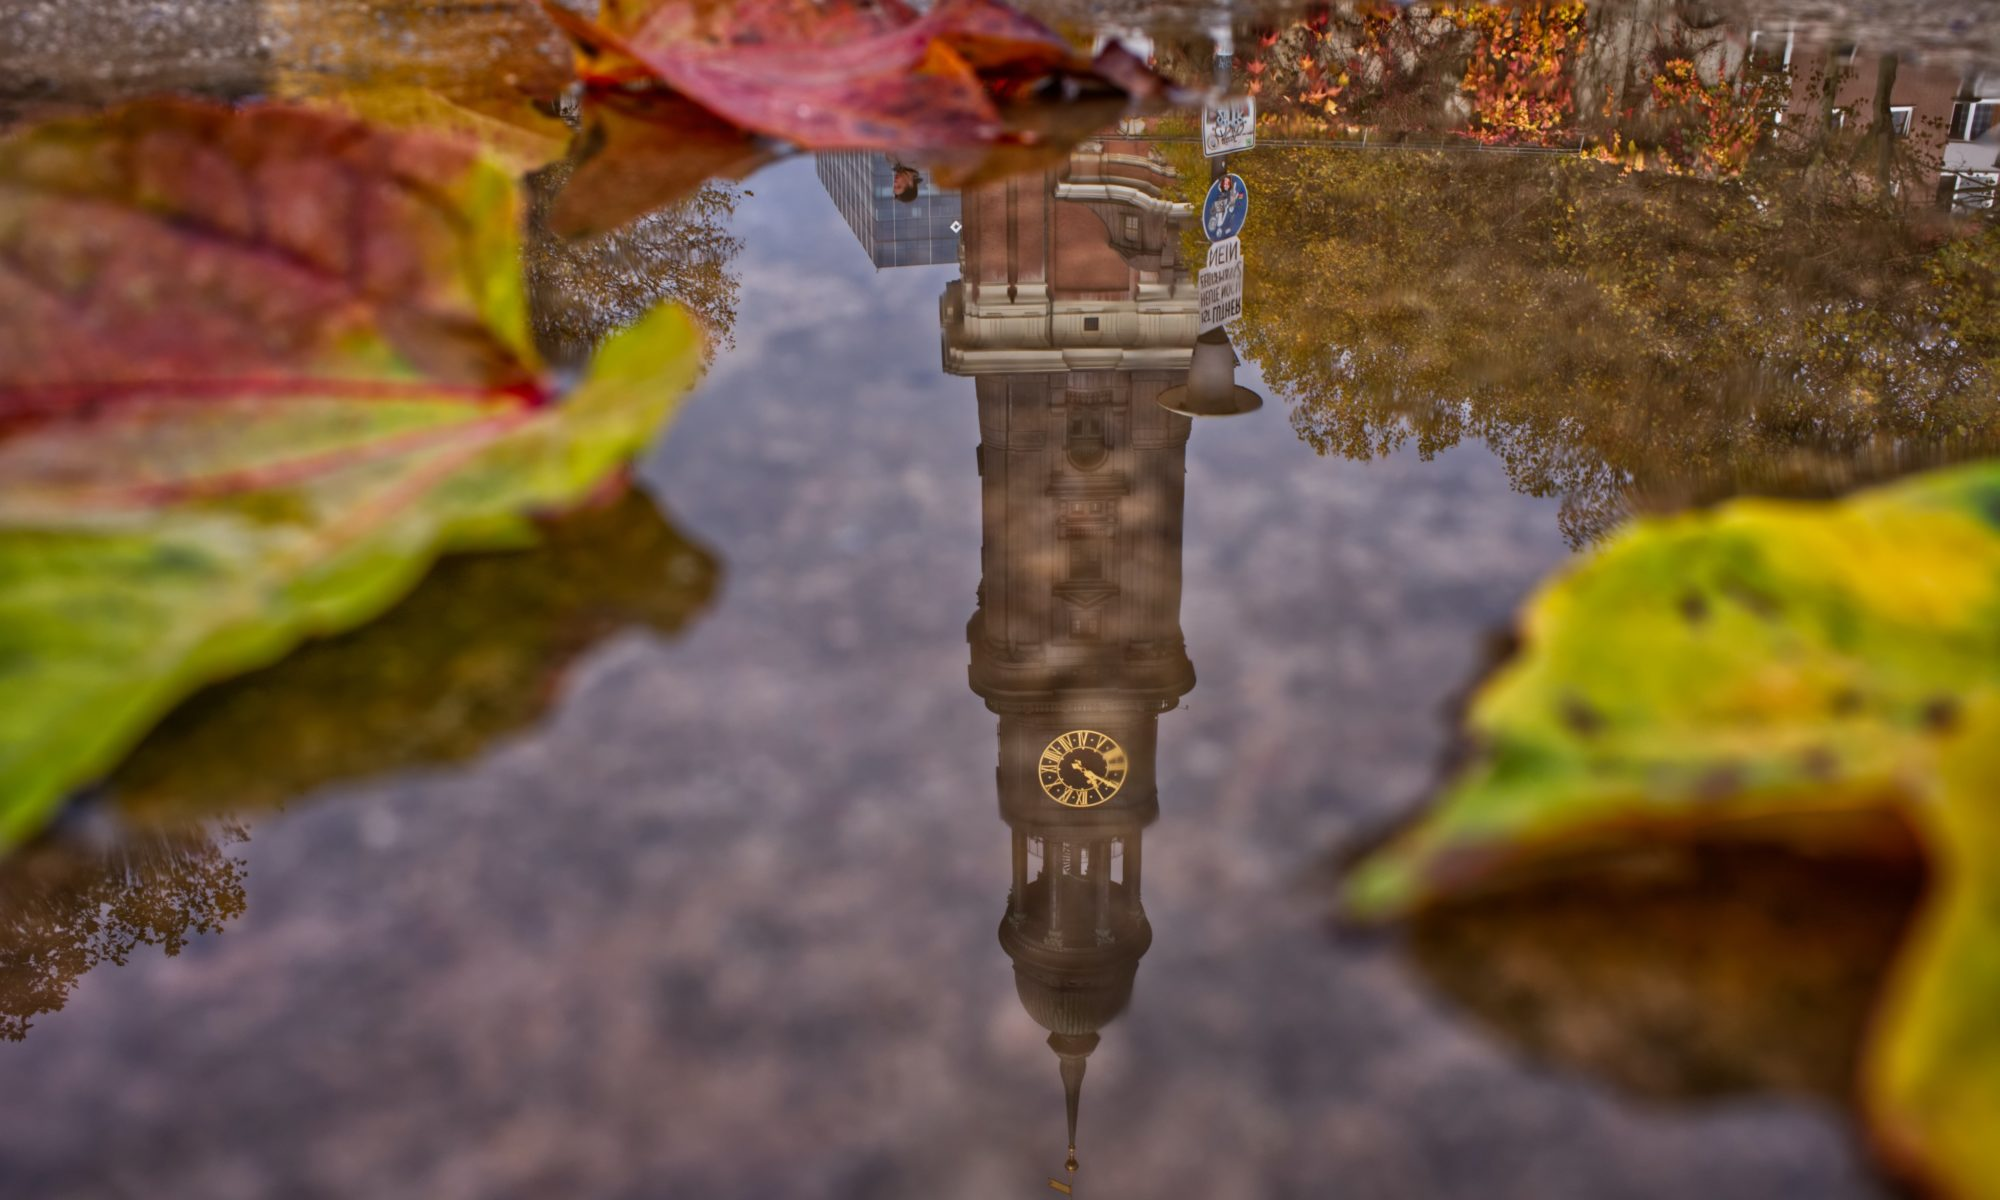 Clock tower reflecting on the water; St. Michaelis, Hamburg, Germany